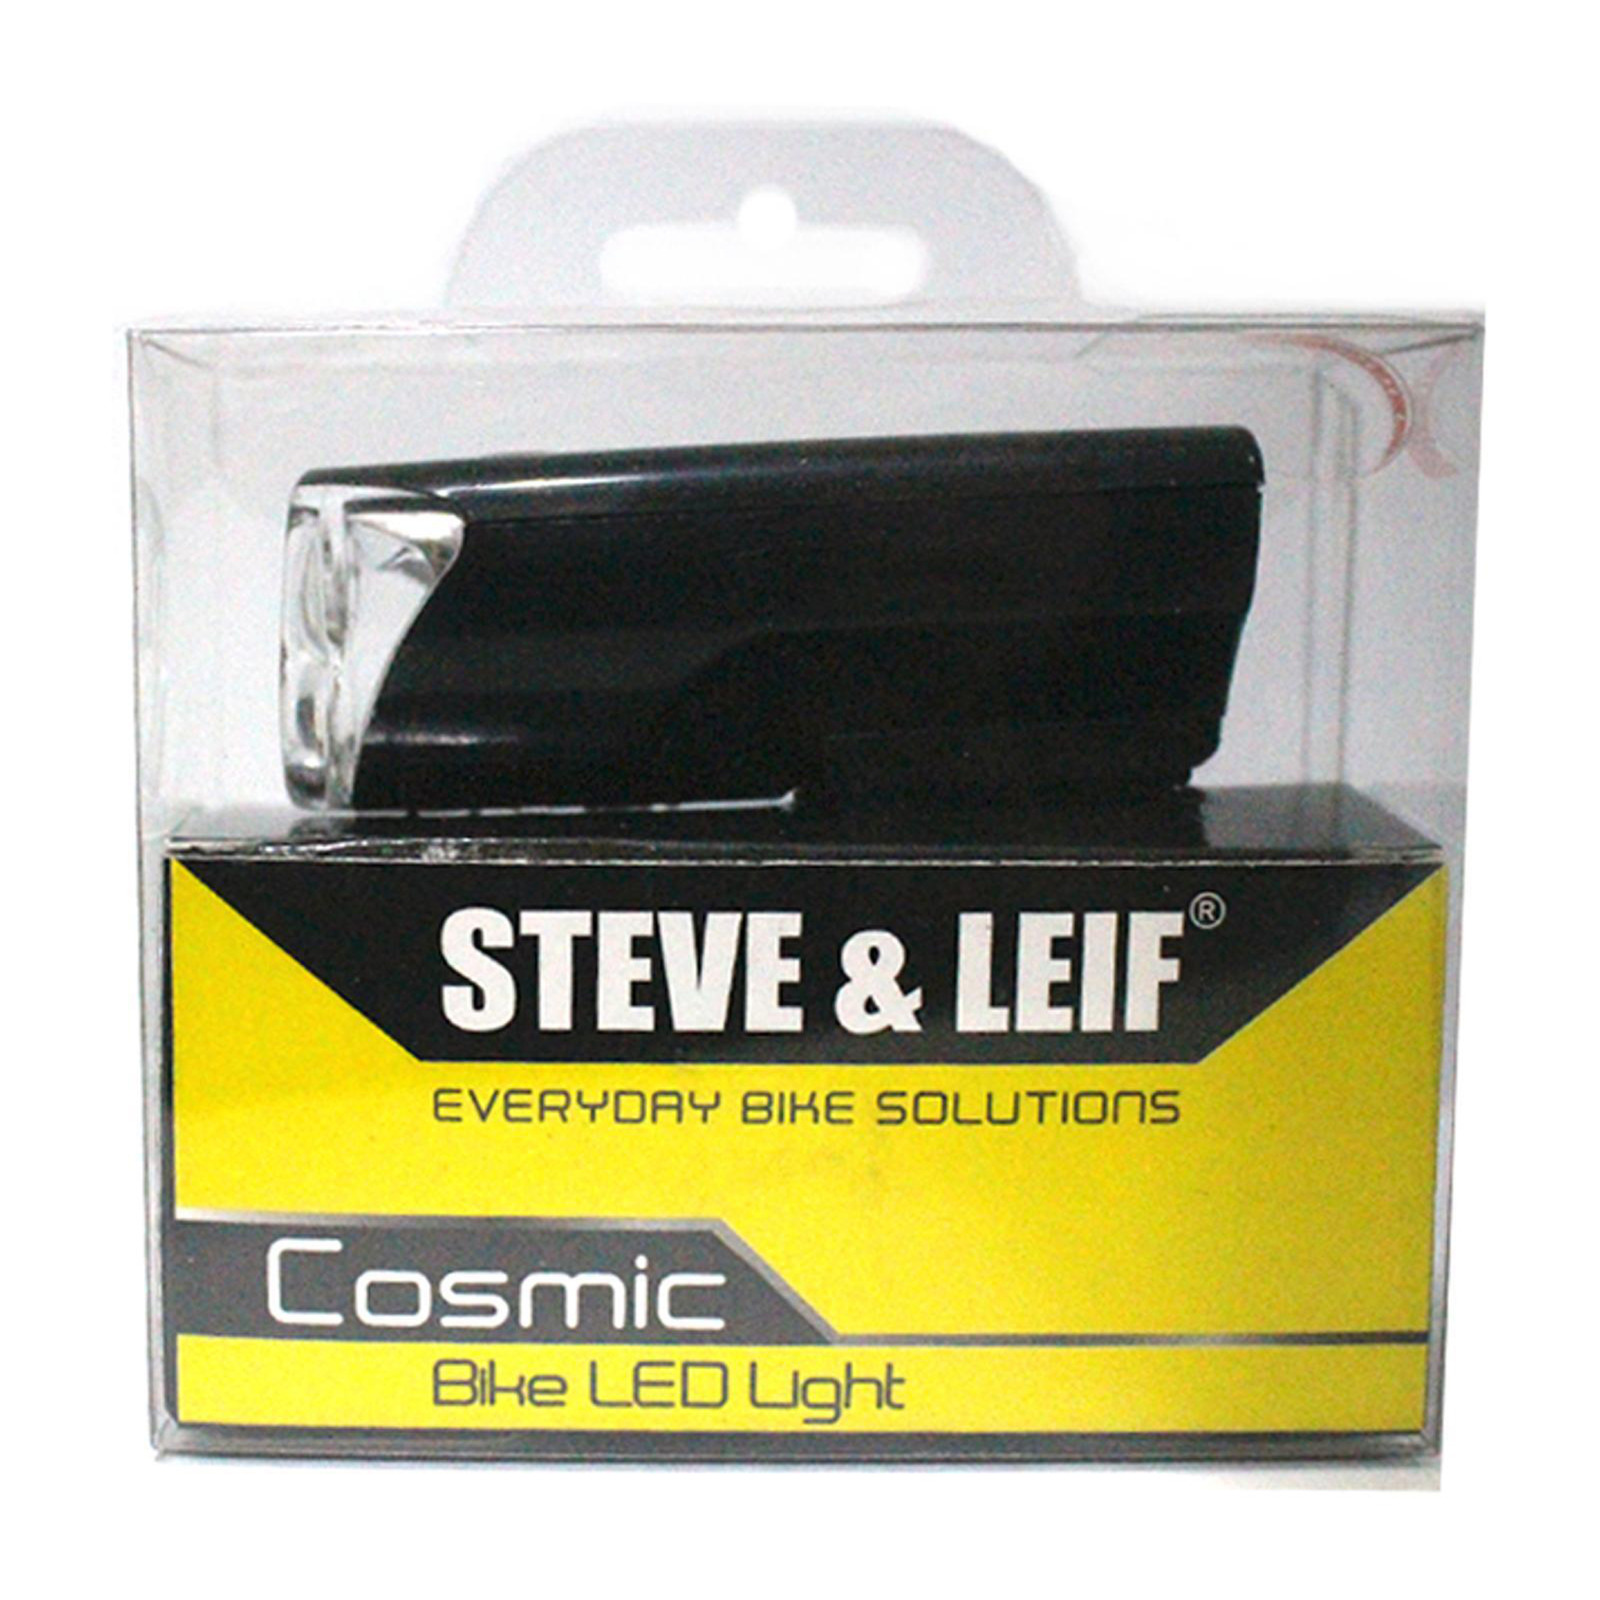 Steve & Leif Cosmic 3 LED Black Bicycle Torch